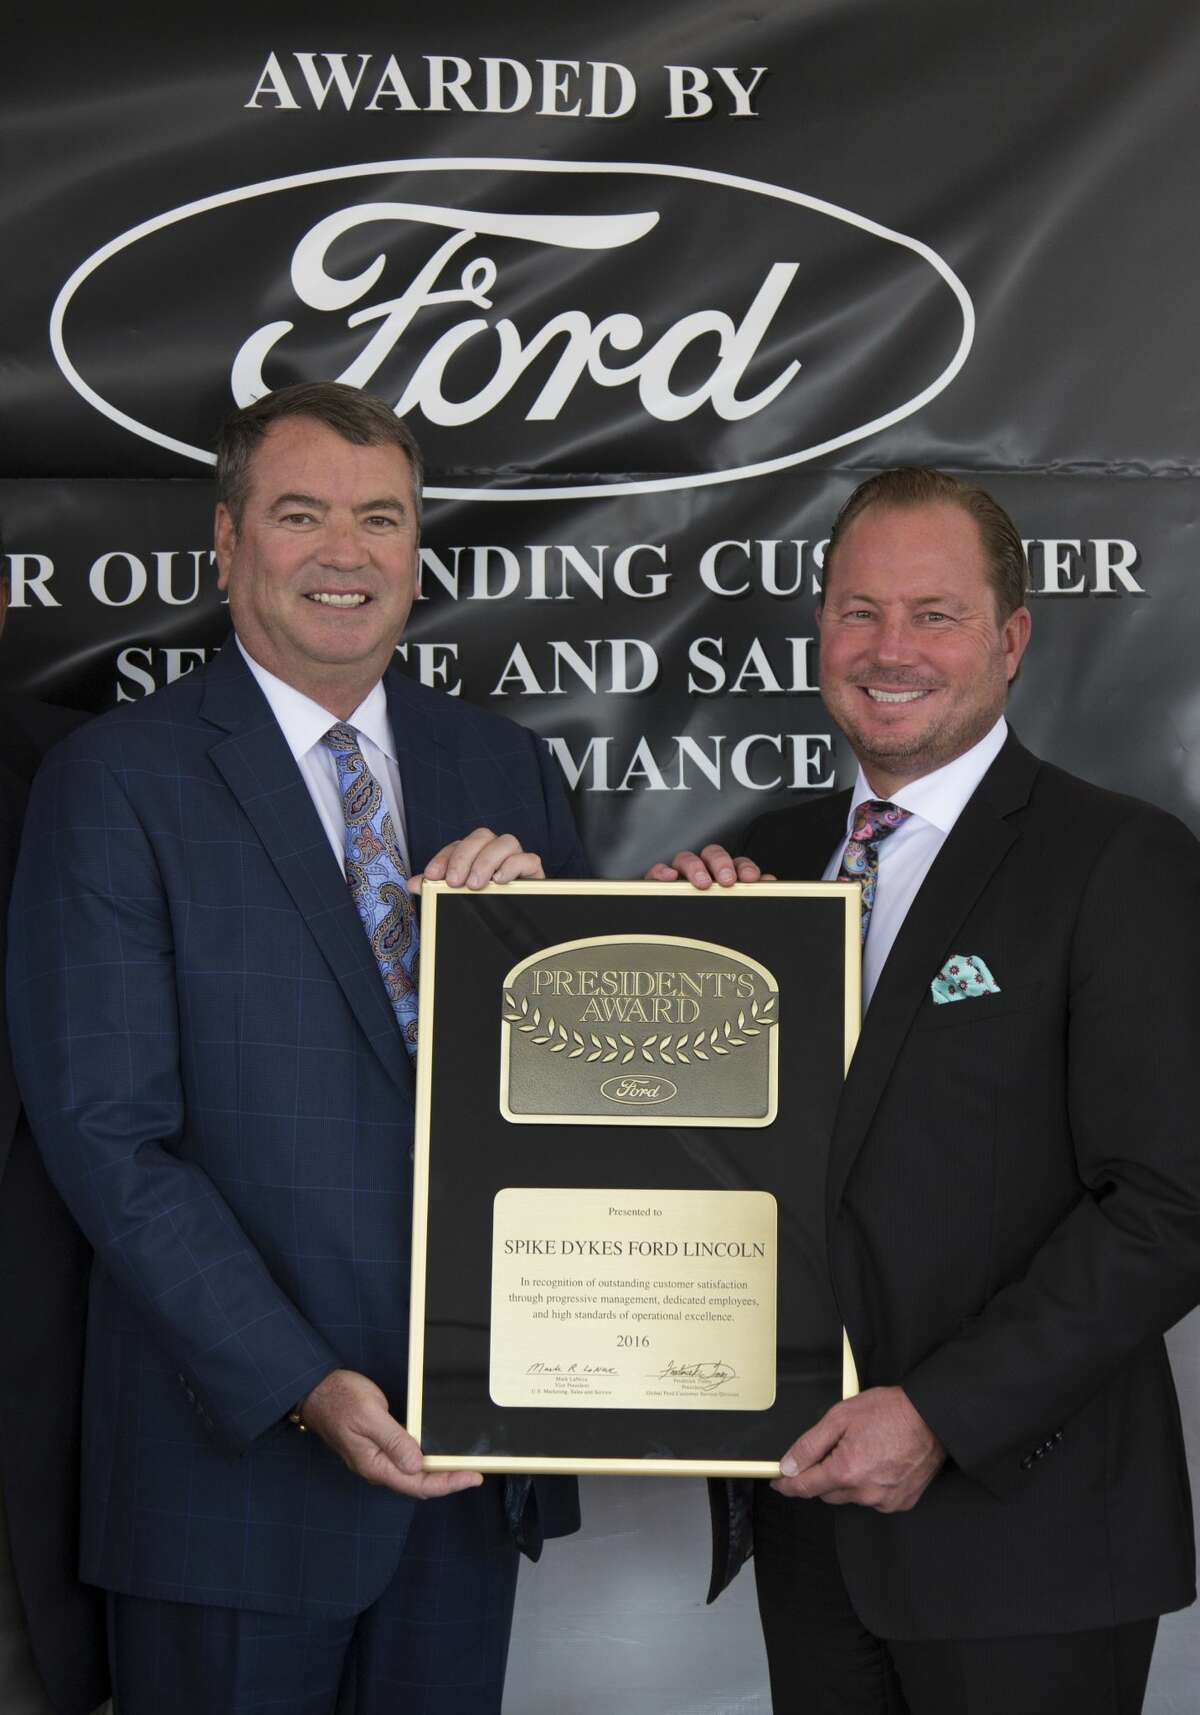 At left, Rick Dykes, Owner - Reagor Dykes Auto Group, and Bart Reagor, Owner, CEO - Reagor Dykes Auto Group, are shown at the 2016 Ford Presentation of President's Award to Spike Dykes Ford in Lamesa. In a new announcement Saturday, that same honor was bestowed on Plainview's Ford dealership. Besides being the first President's Award everfor Reagor Dykes Ford in Plainview, it also marked the first time both Reagor Dykes Ford dealerships were recognized in same year.